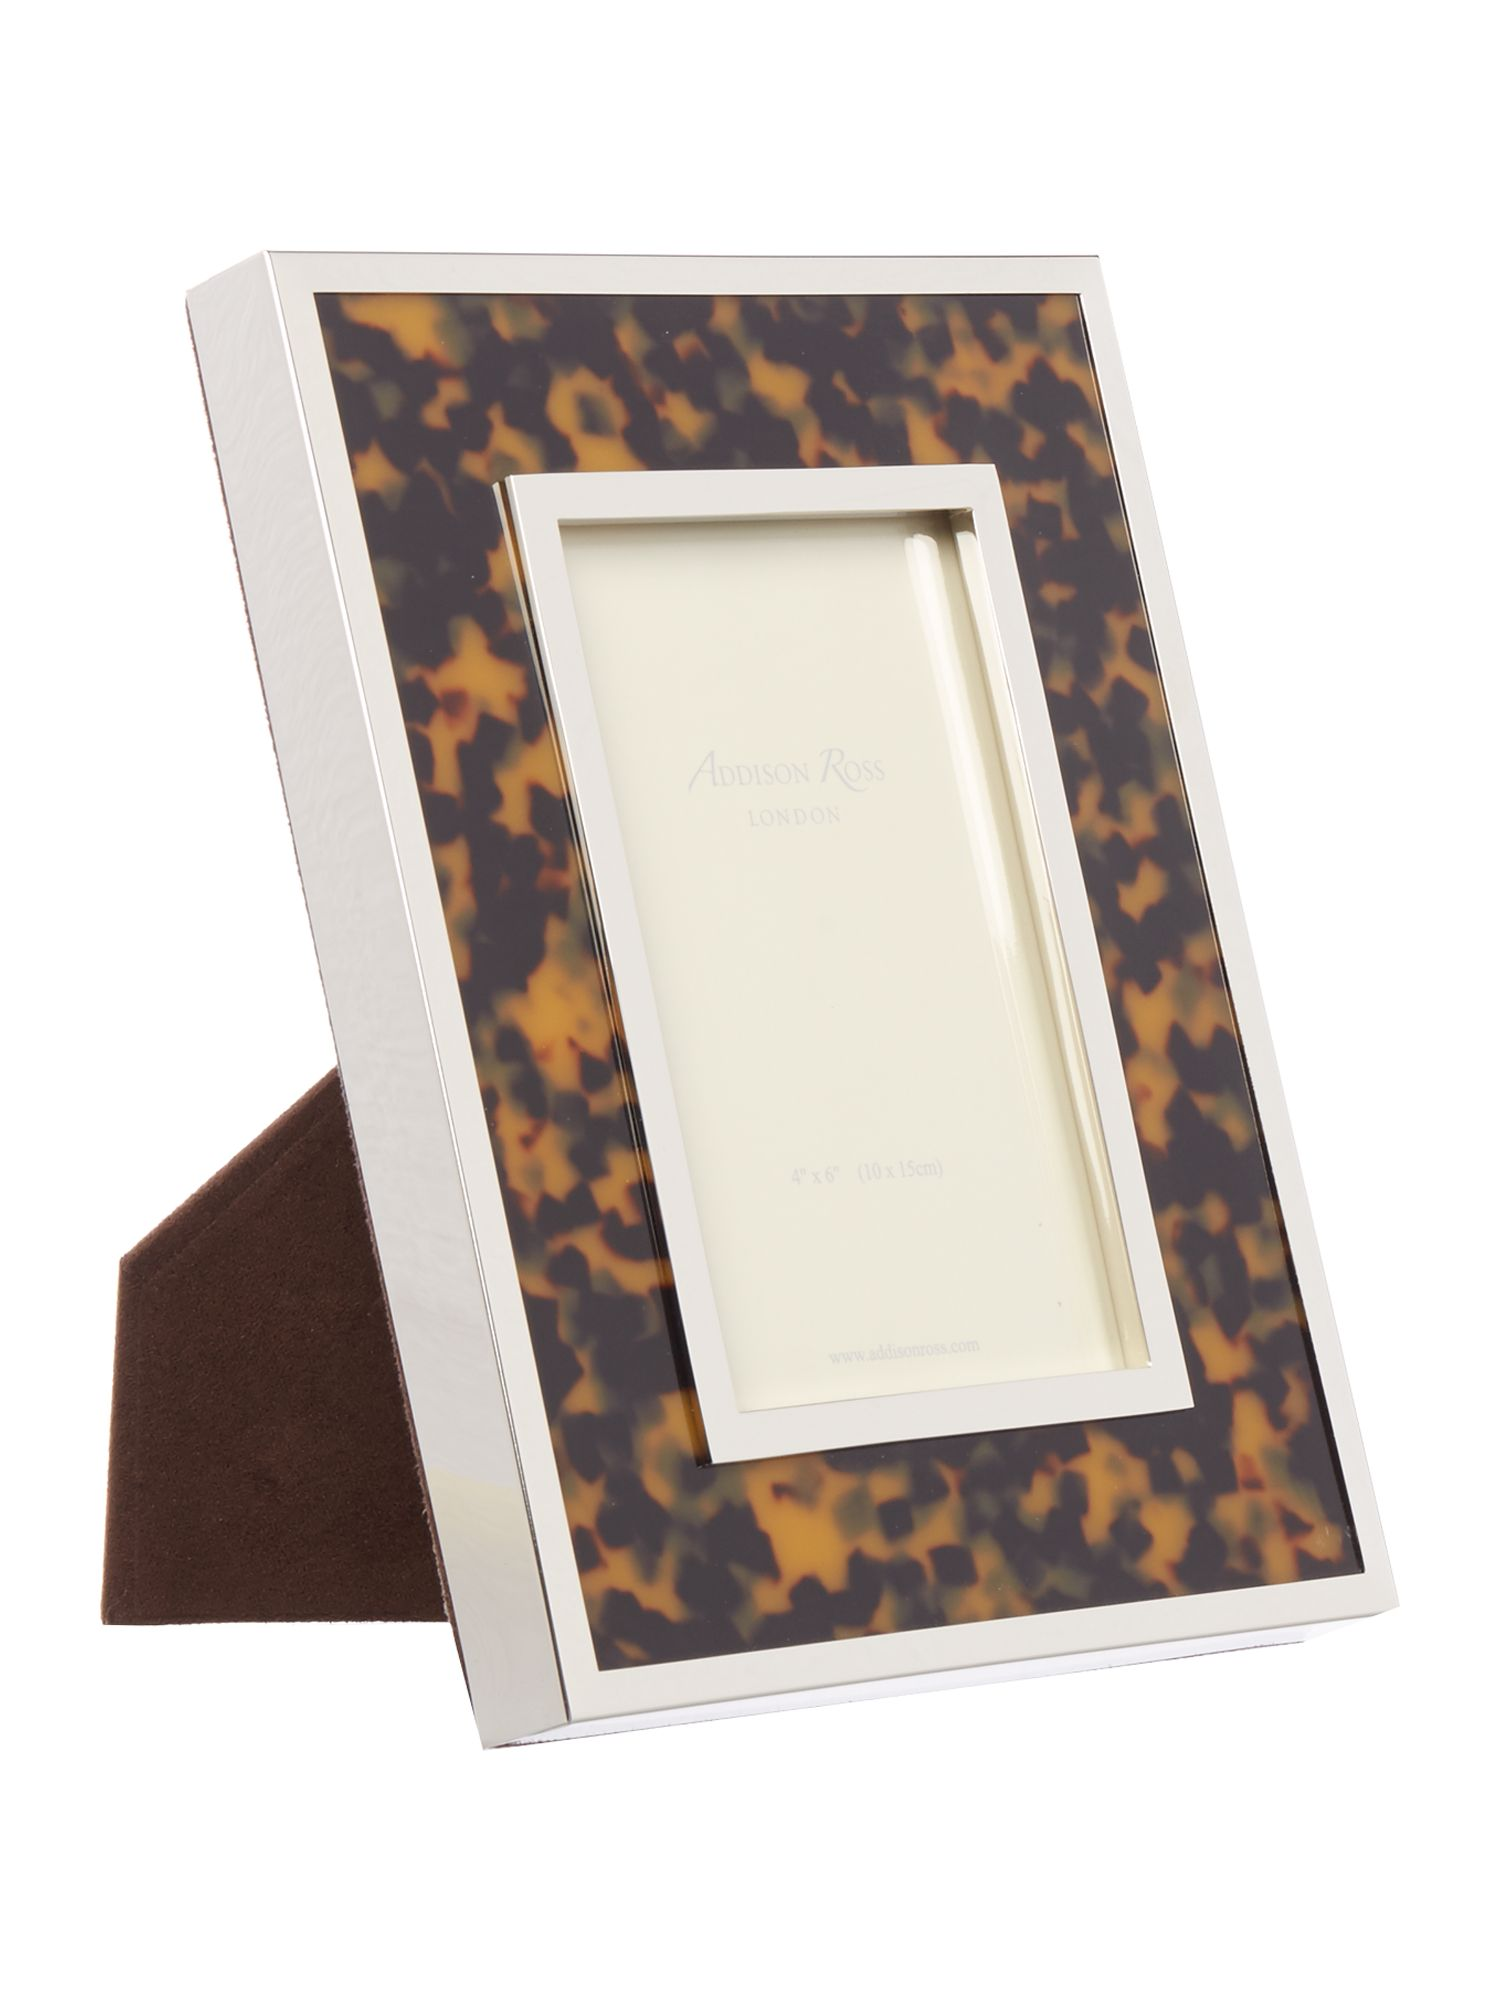 Image of Addison Ross 4x6 faux tortoise shell frame